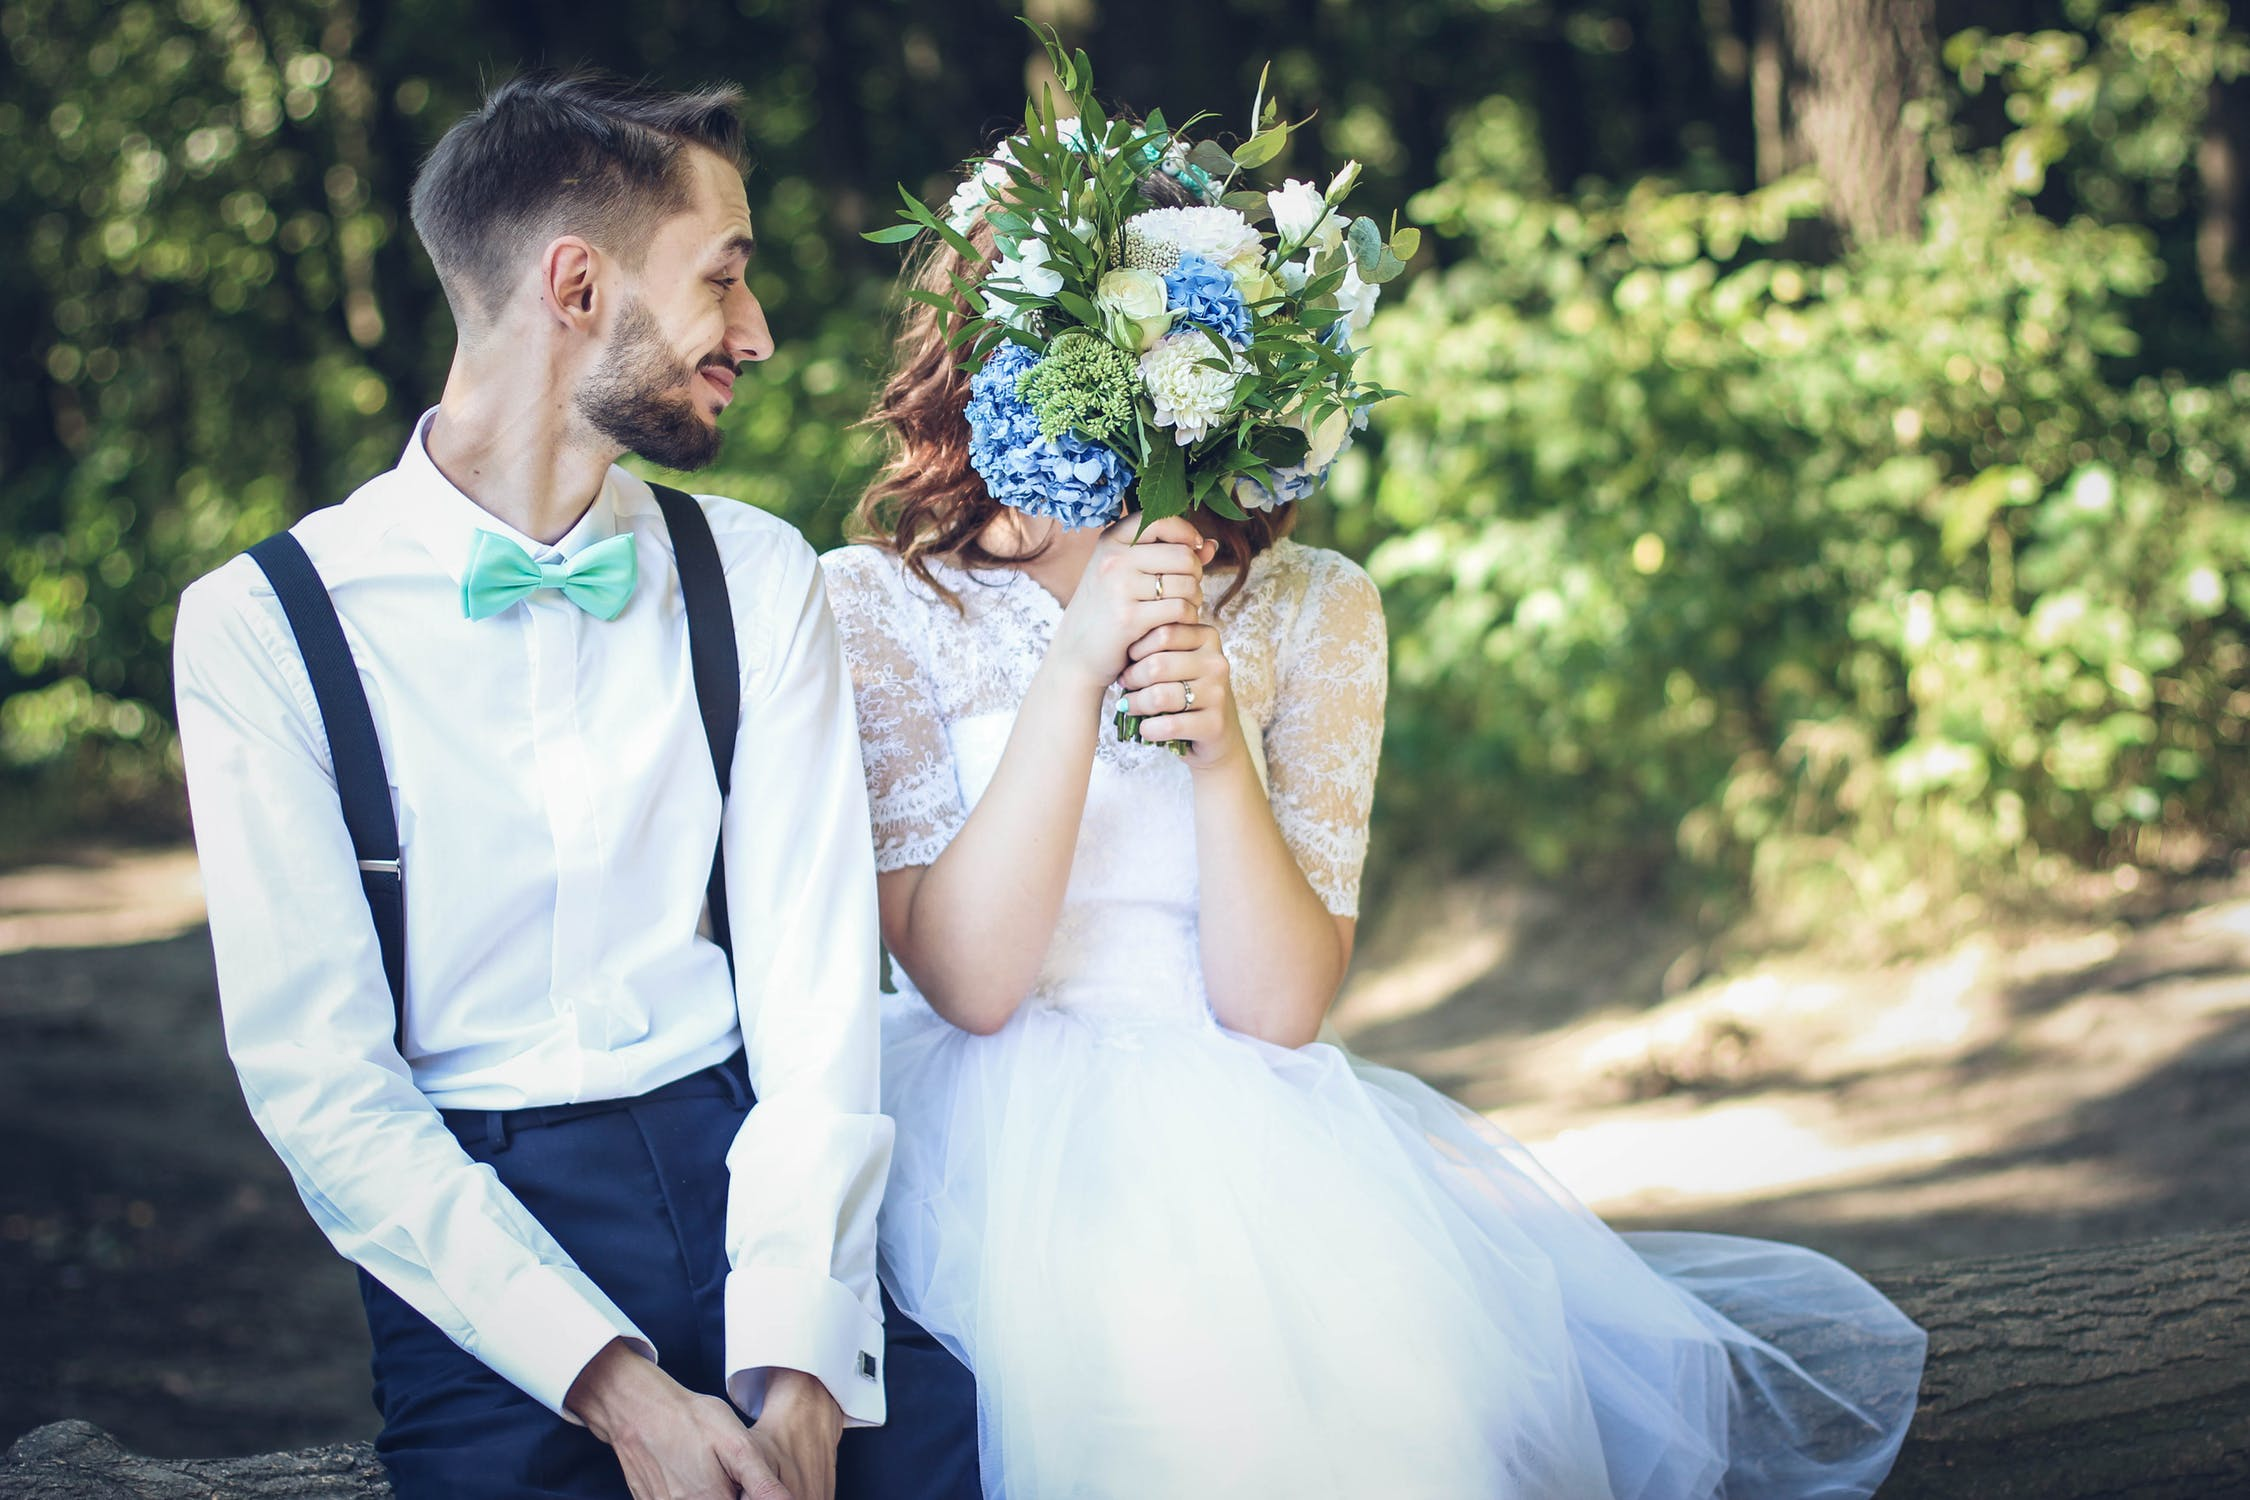 How to Have a Wedding on a Budget